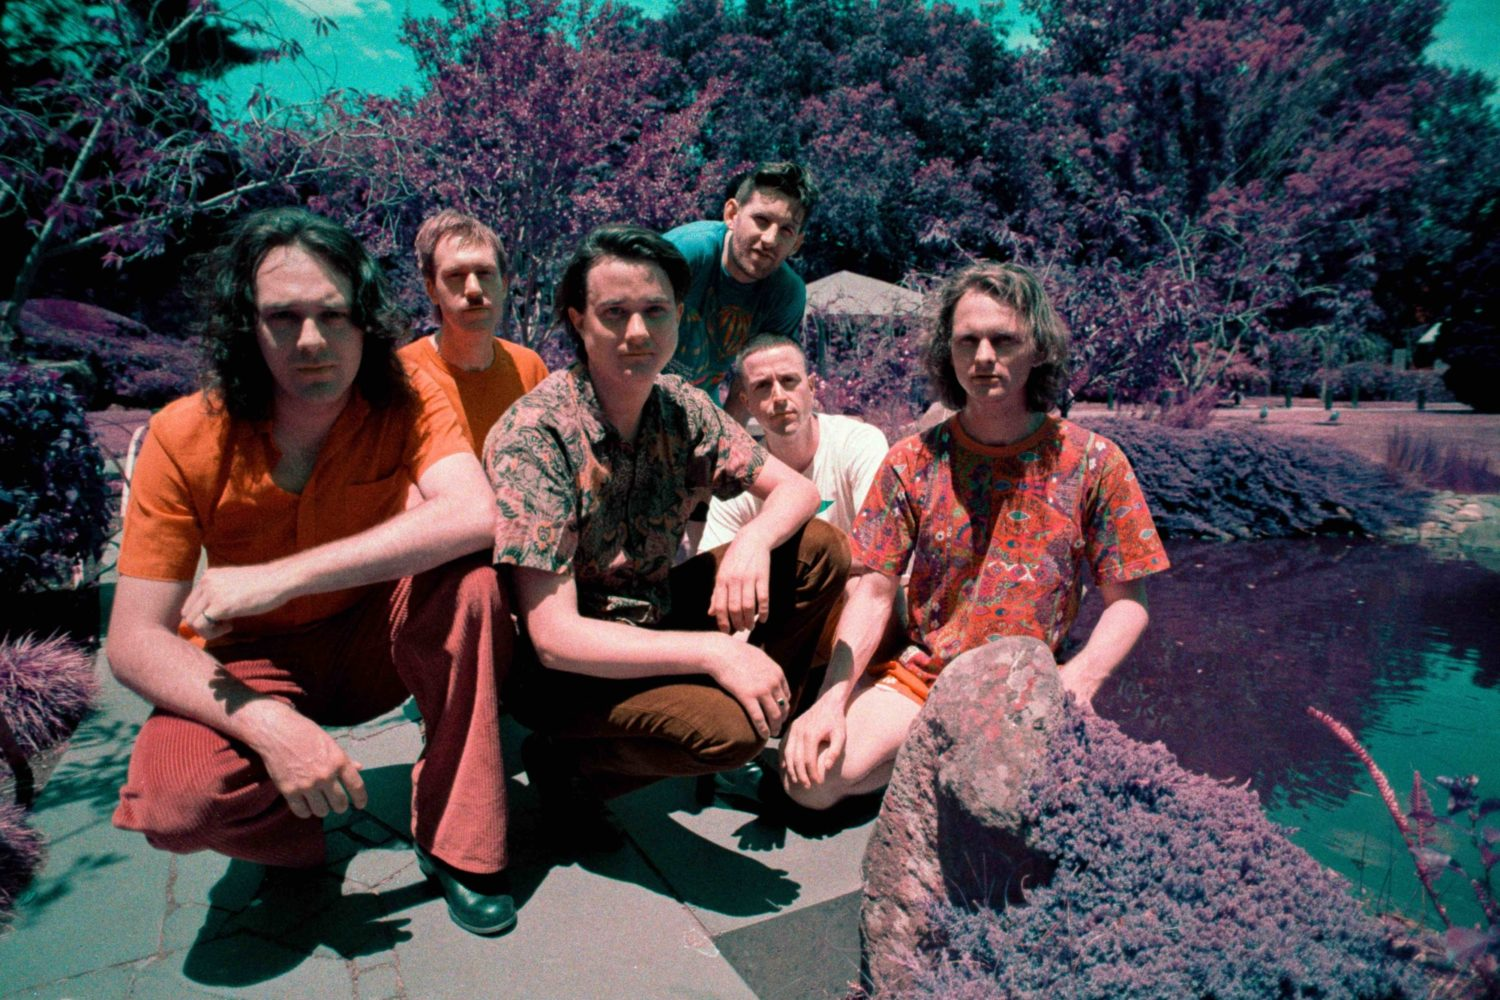 King Gizzard & The Lizard Wizard release animated 'Interior People' video